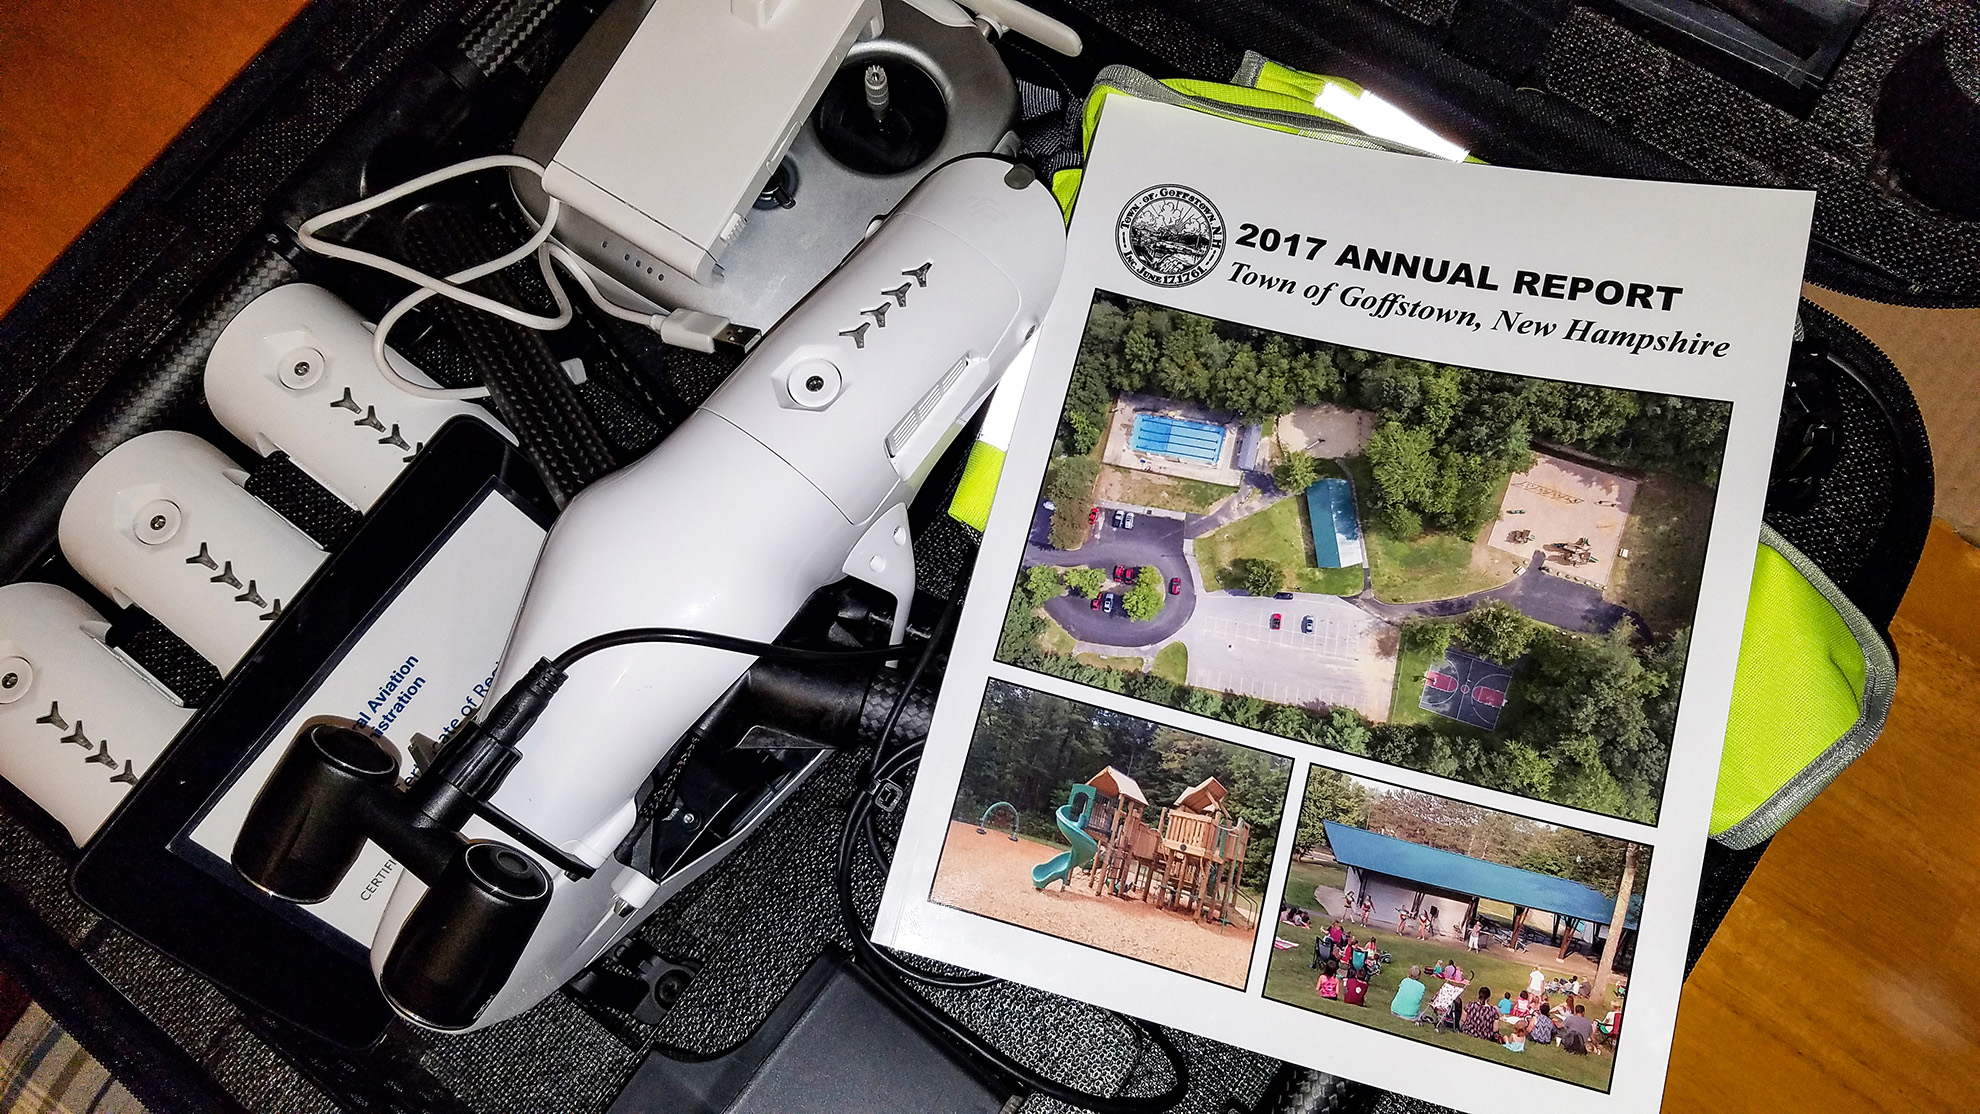 Image of DJI Inspire with Town Report